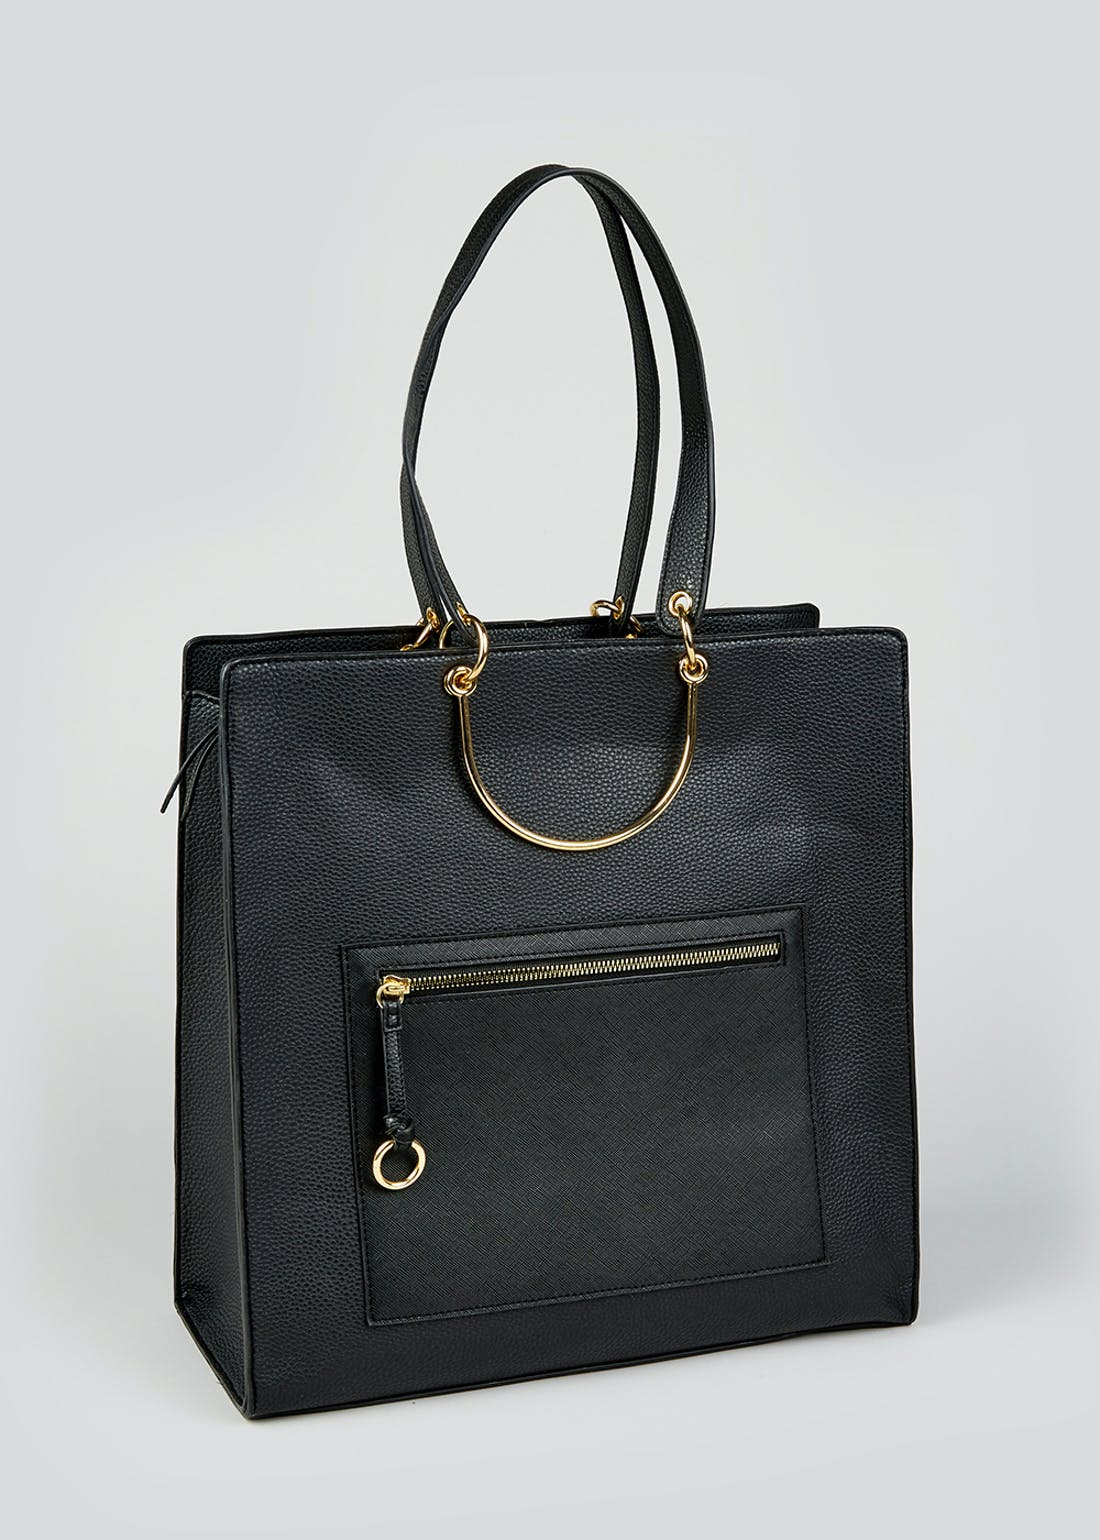 Gold Trim Tote Bag (36cm x 35cm x 14cm)